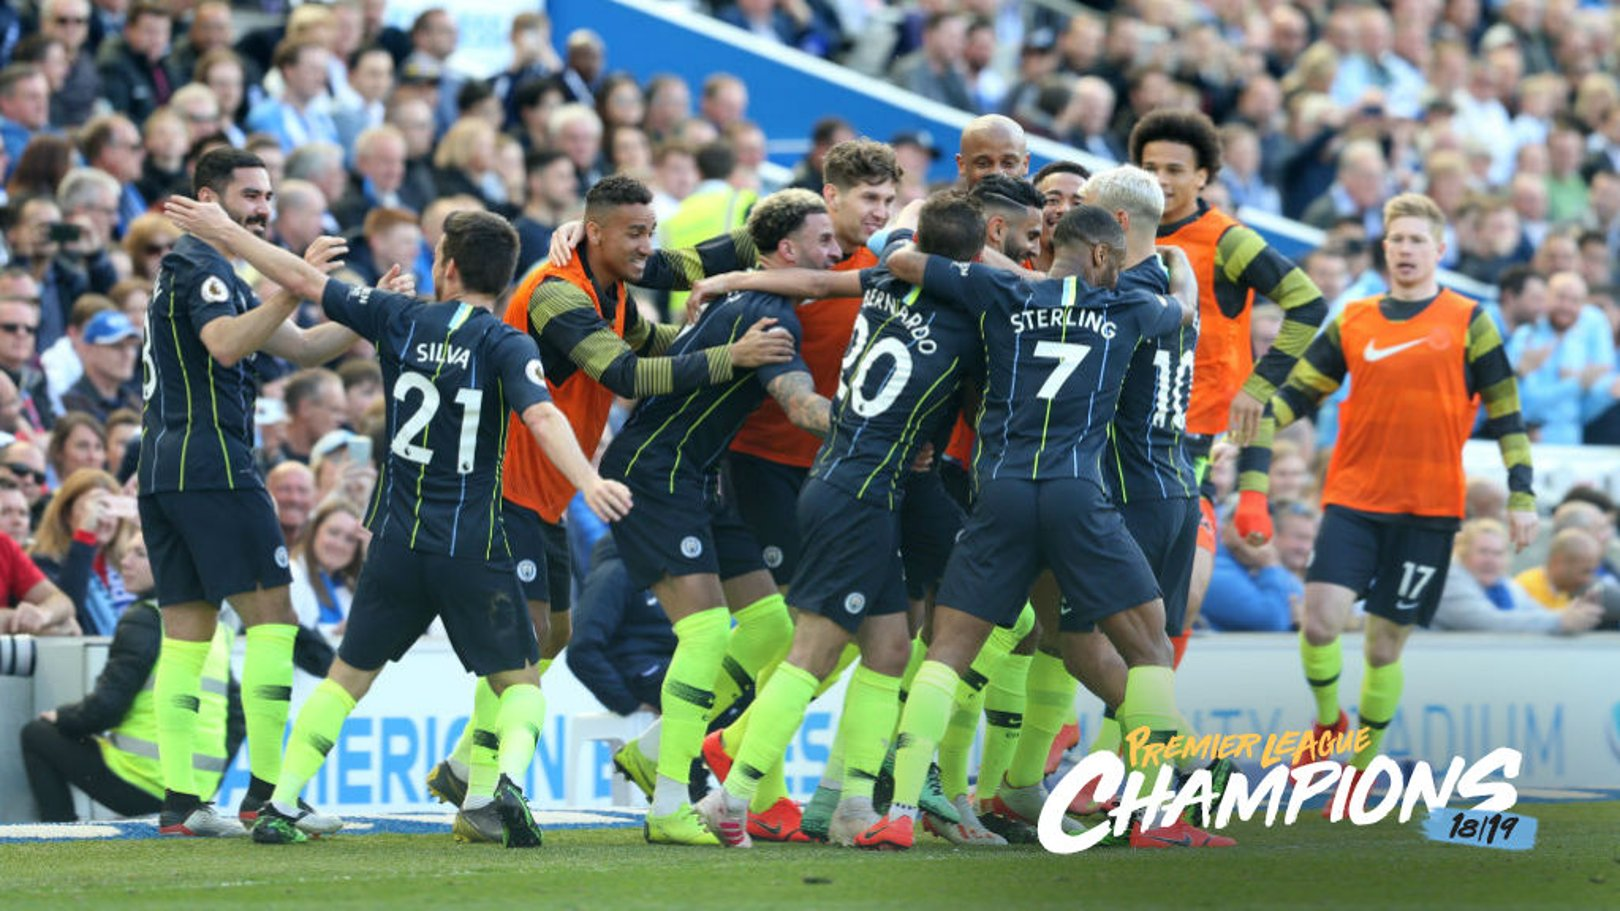 CHAMPIONS: City have retained the title with a win at Brighton